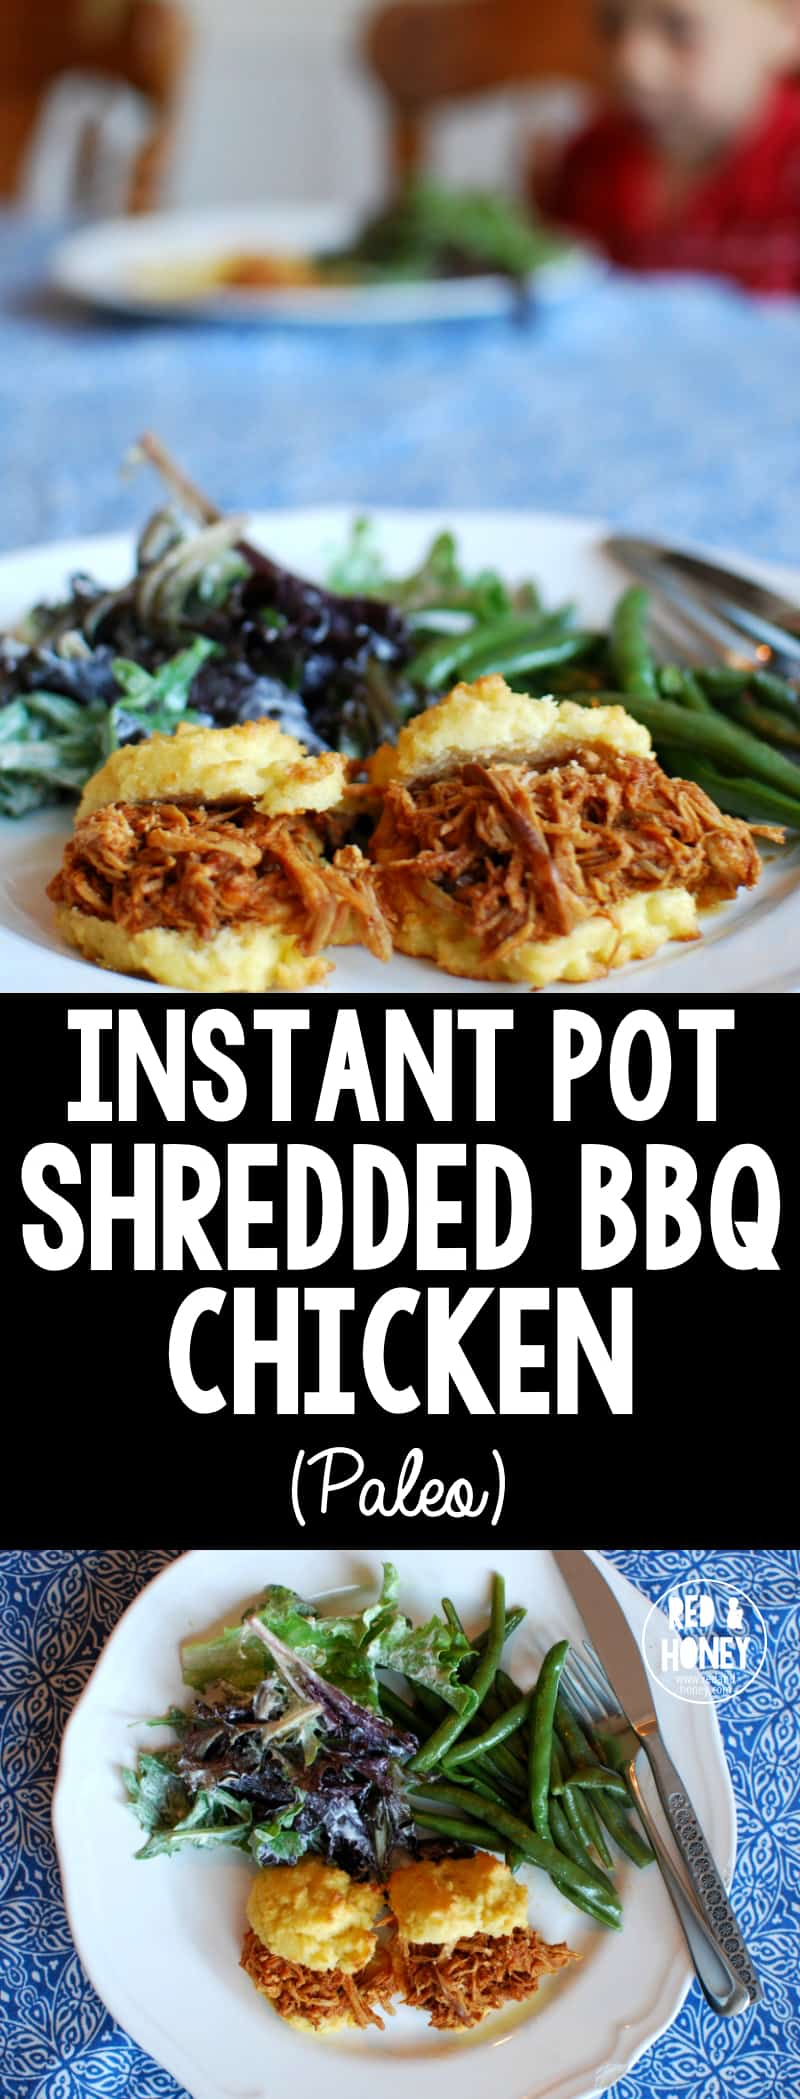 Instant Pot Shredded BBQ Chicken - quick and delicious with clean ingredients!